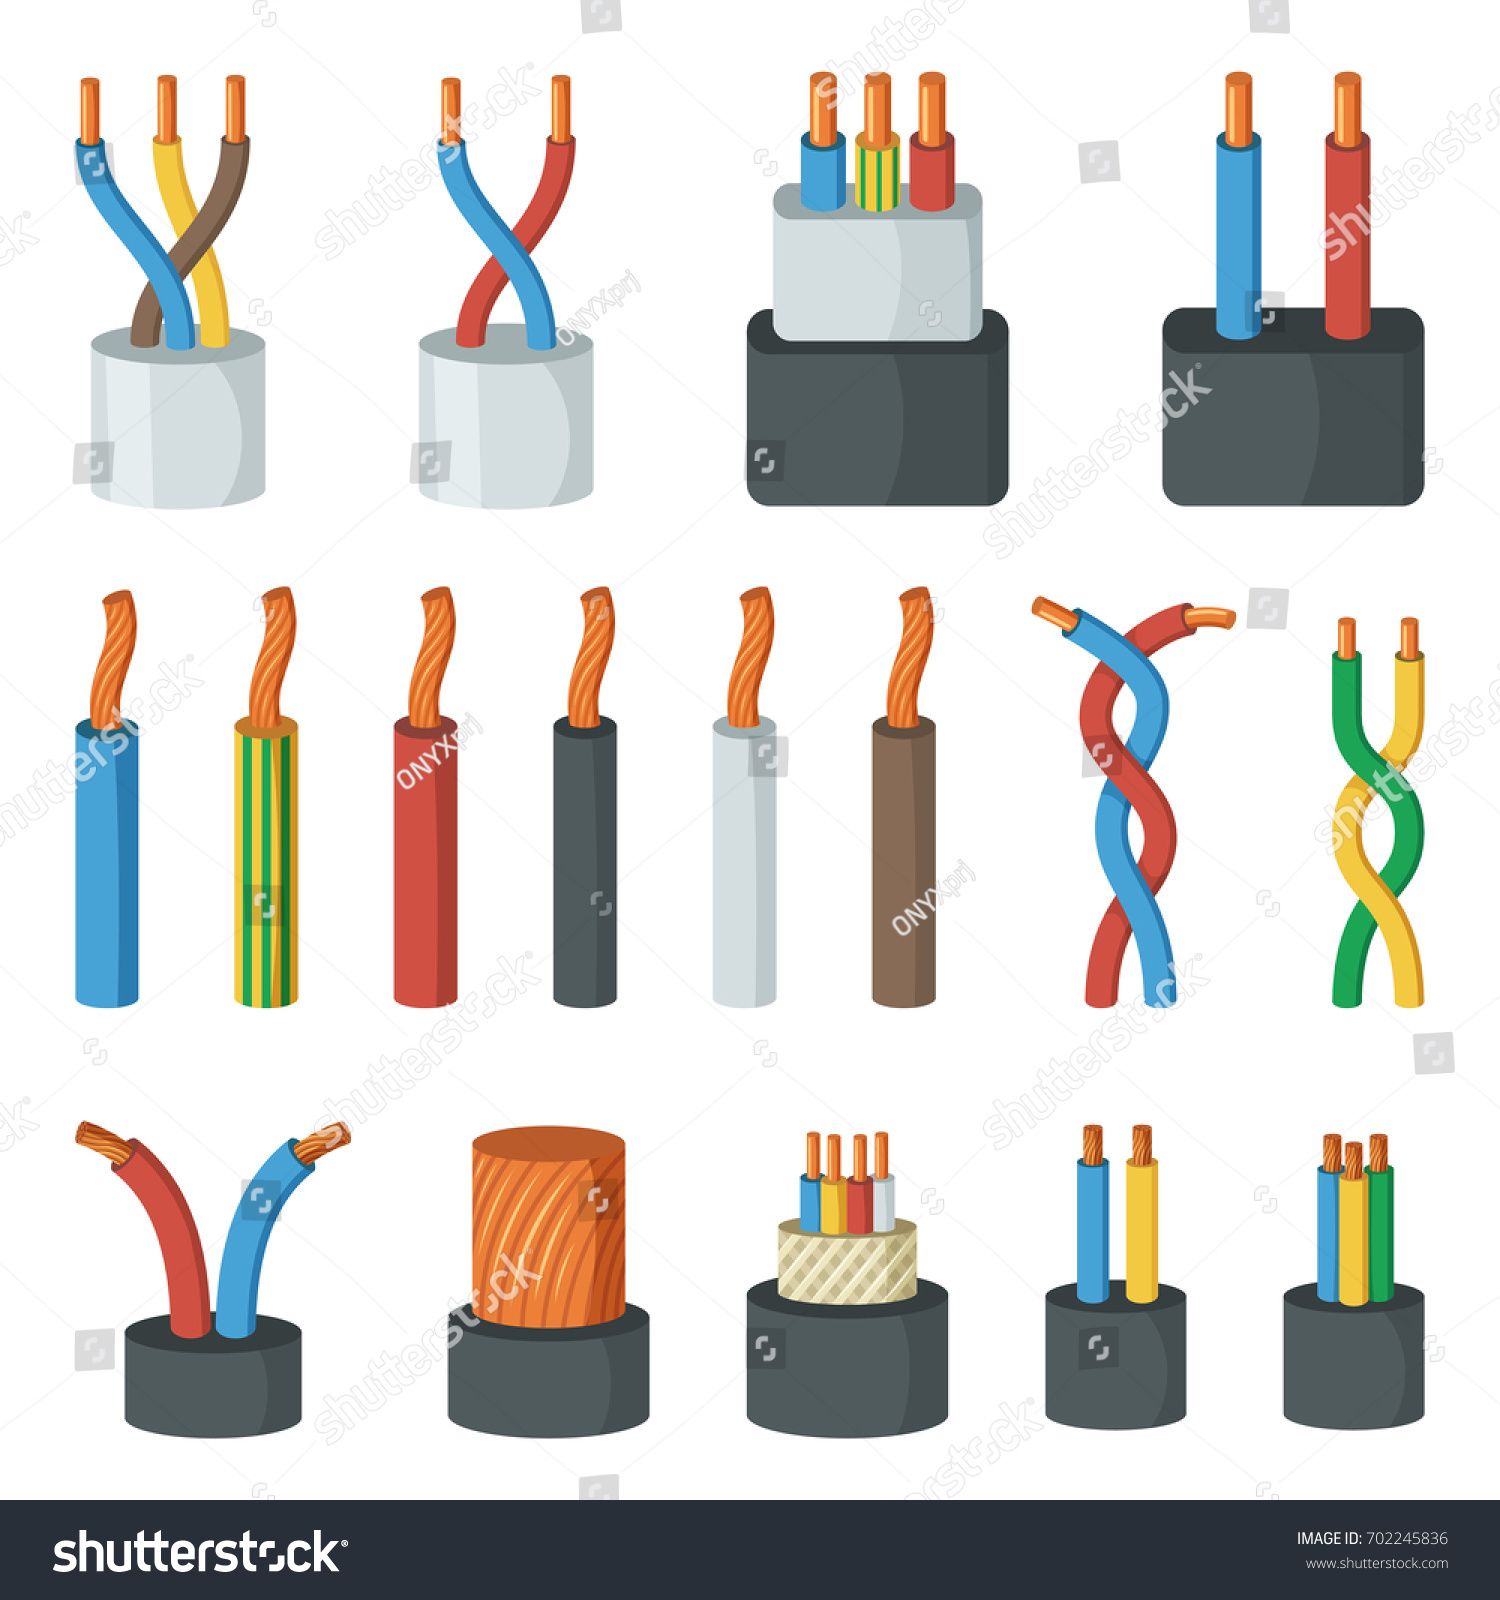 Electrical Cable Wires Different Amperage Colors Stock Vector ...